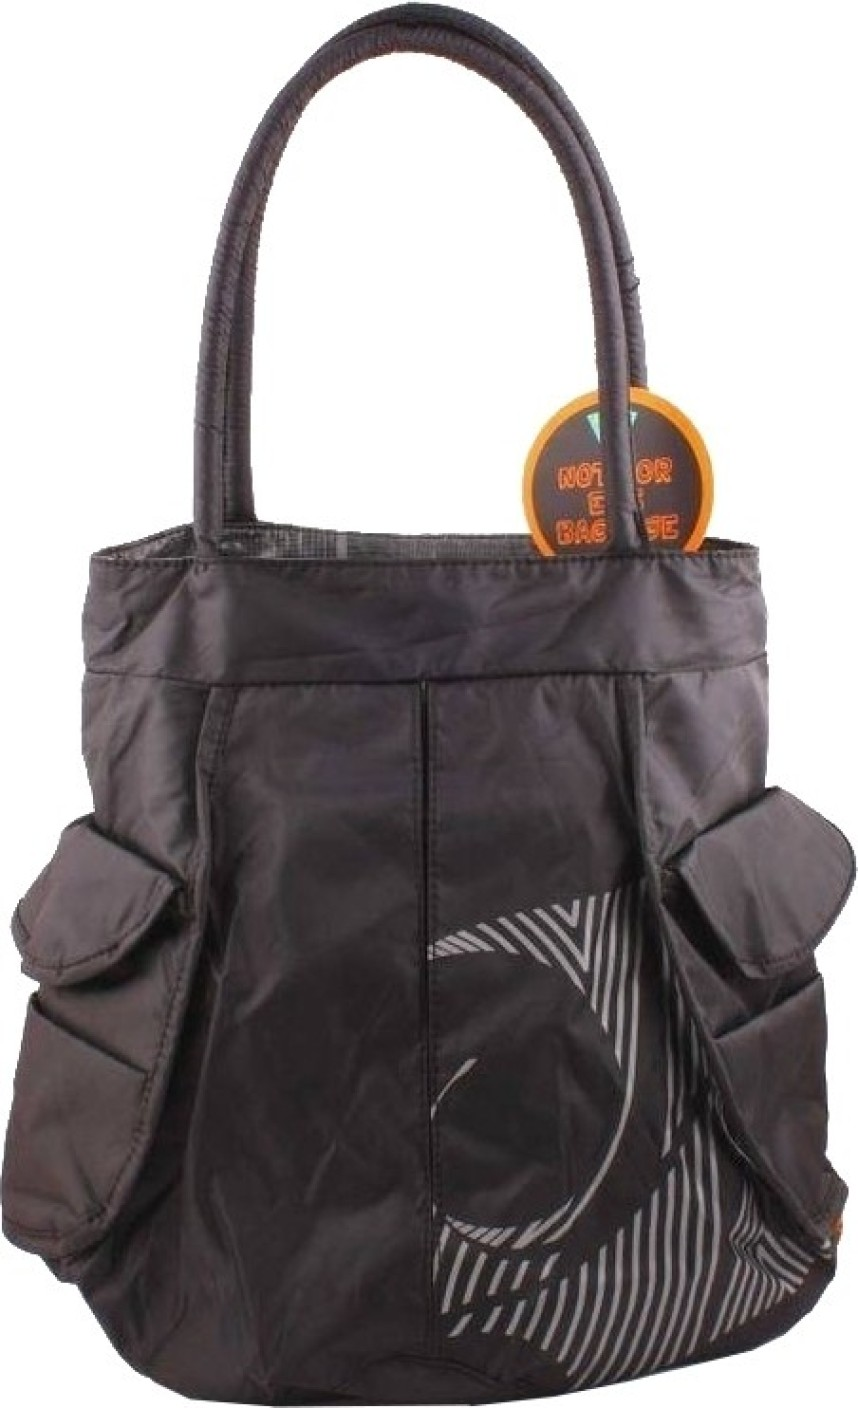 Buy Fastrack Shoulder Bag Black Online @ Best Price in India | Flipkart.com